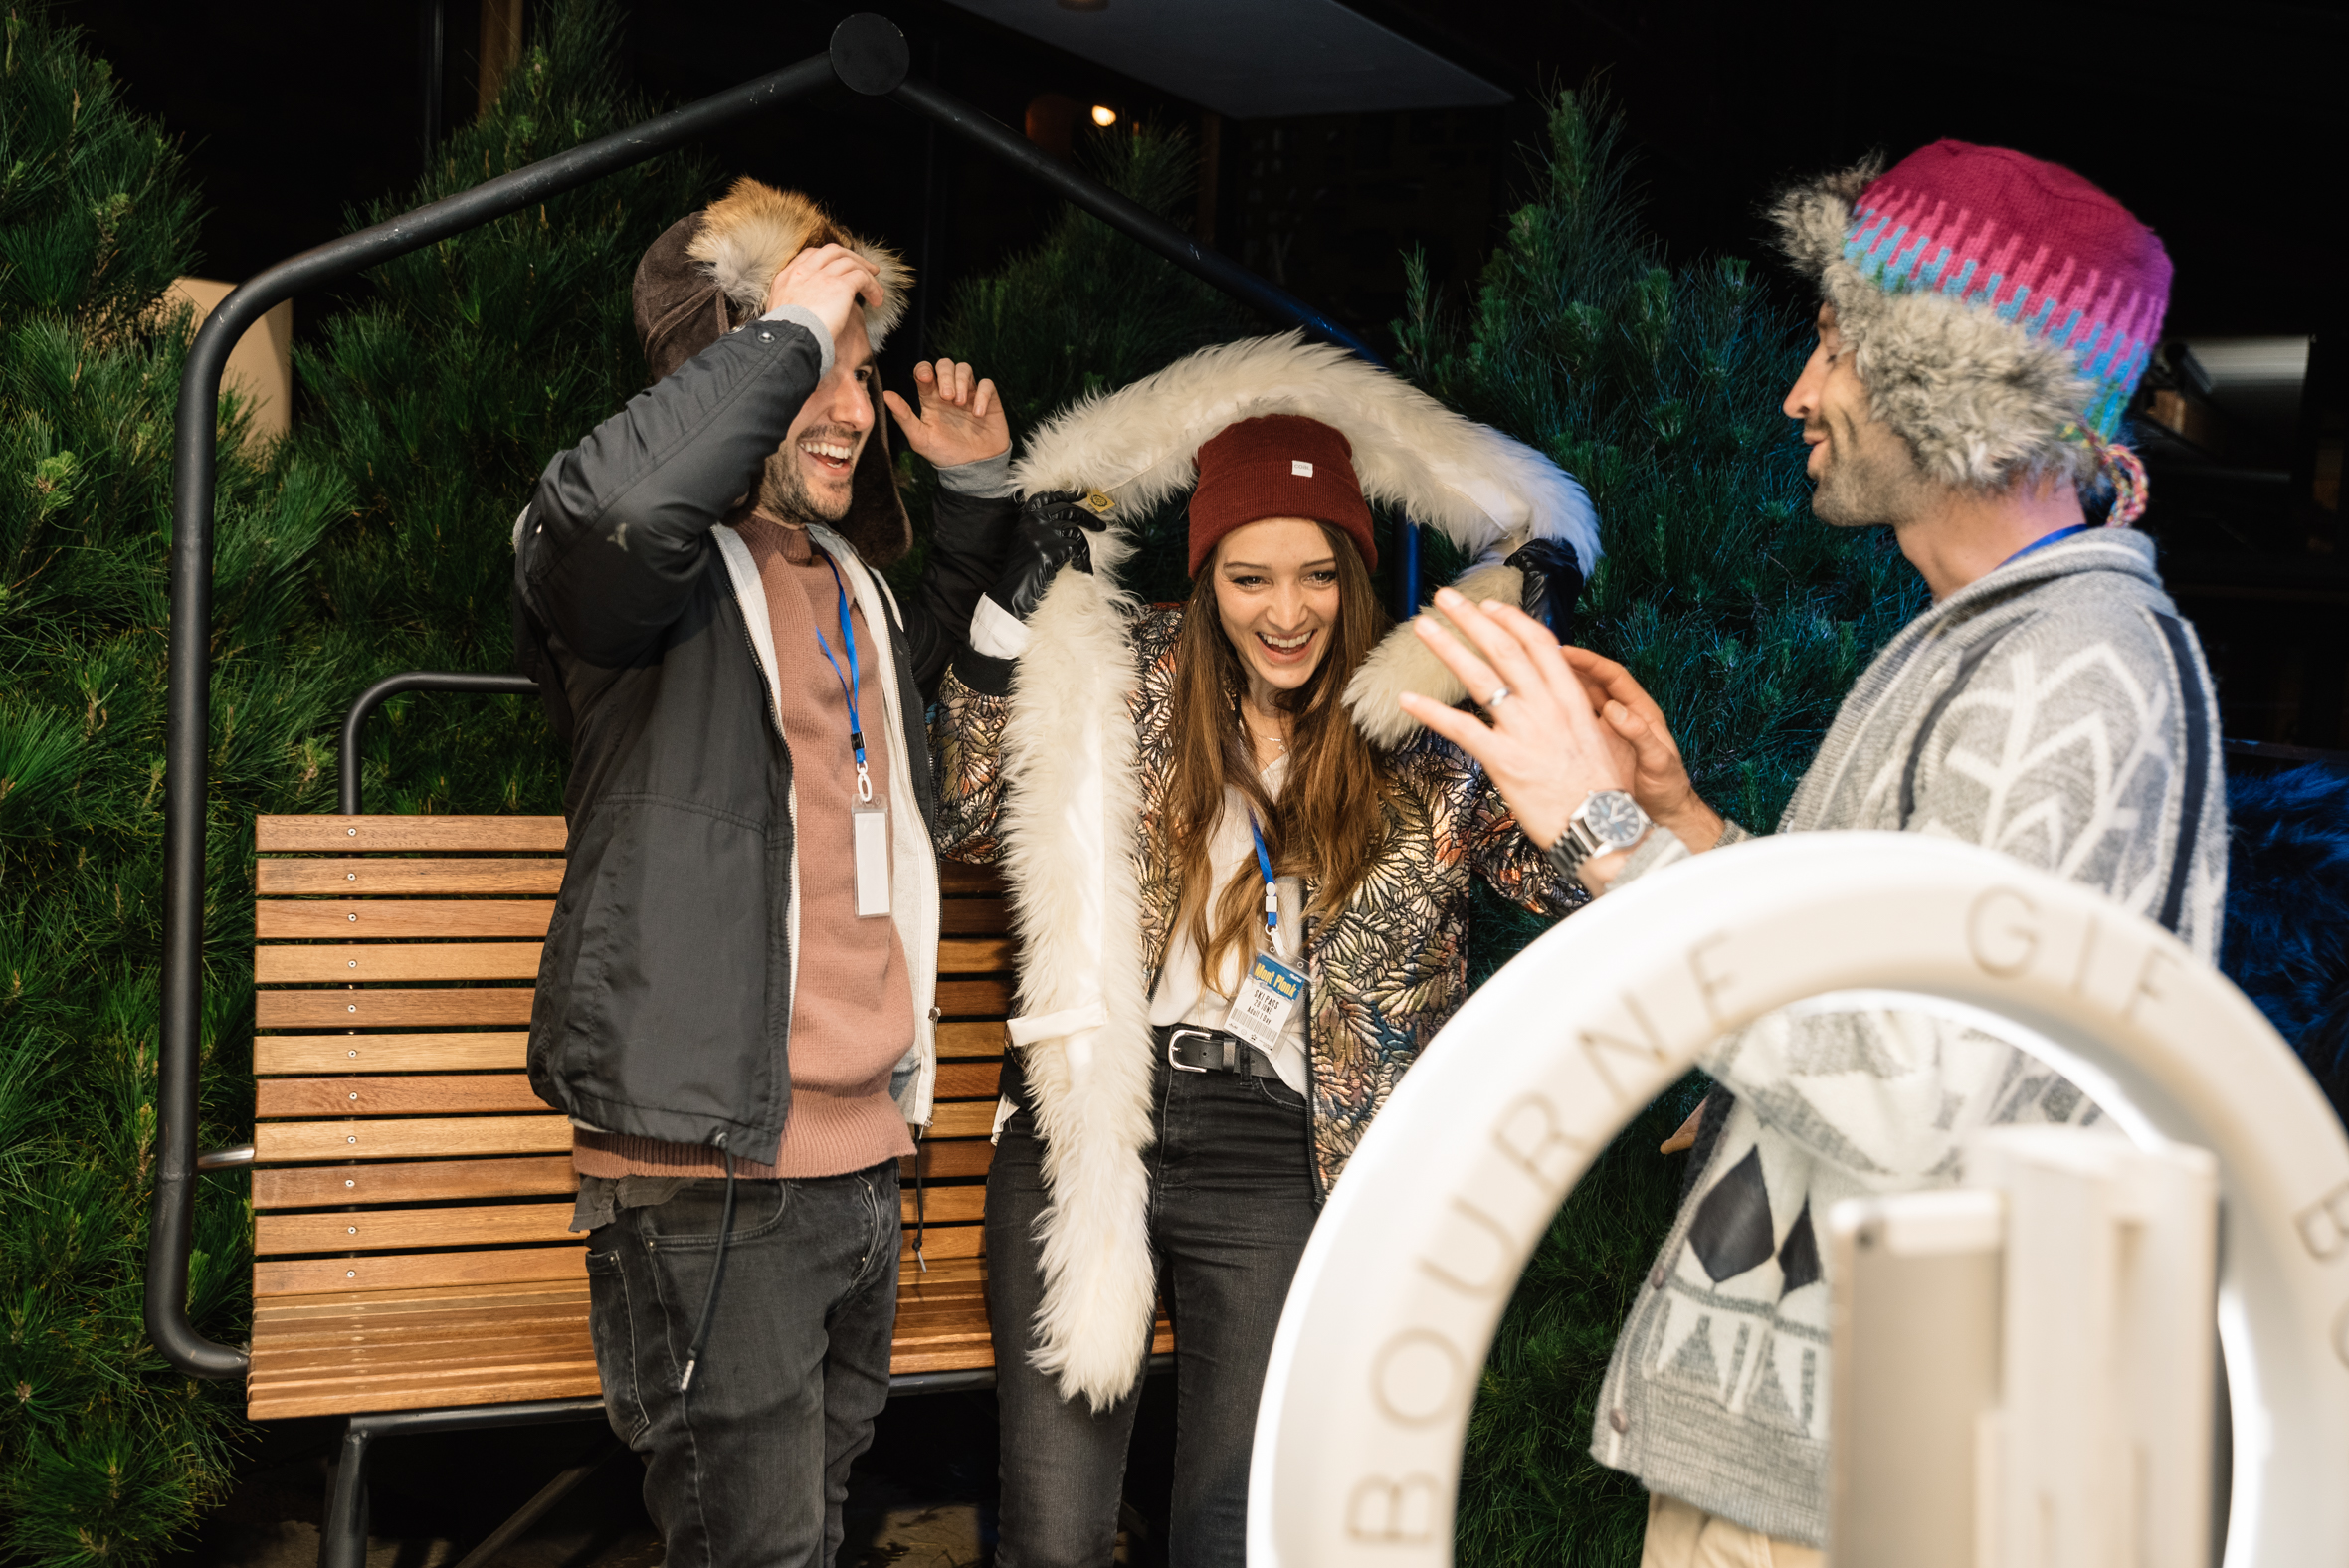 Mont Plonk Opening Party   Venue: Melbourne Public  SGB Highlights: The ski chair lift + Christmas trees!